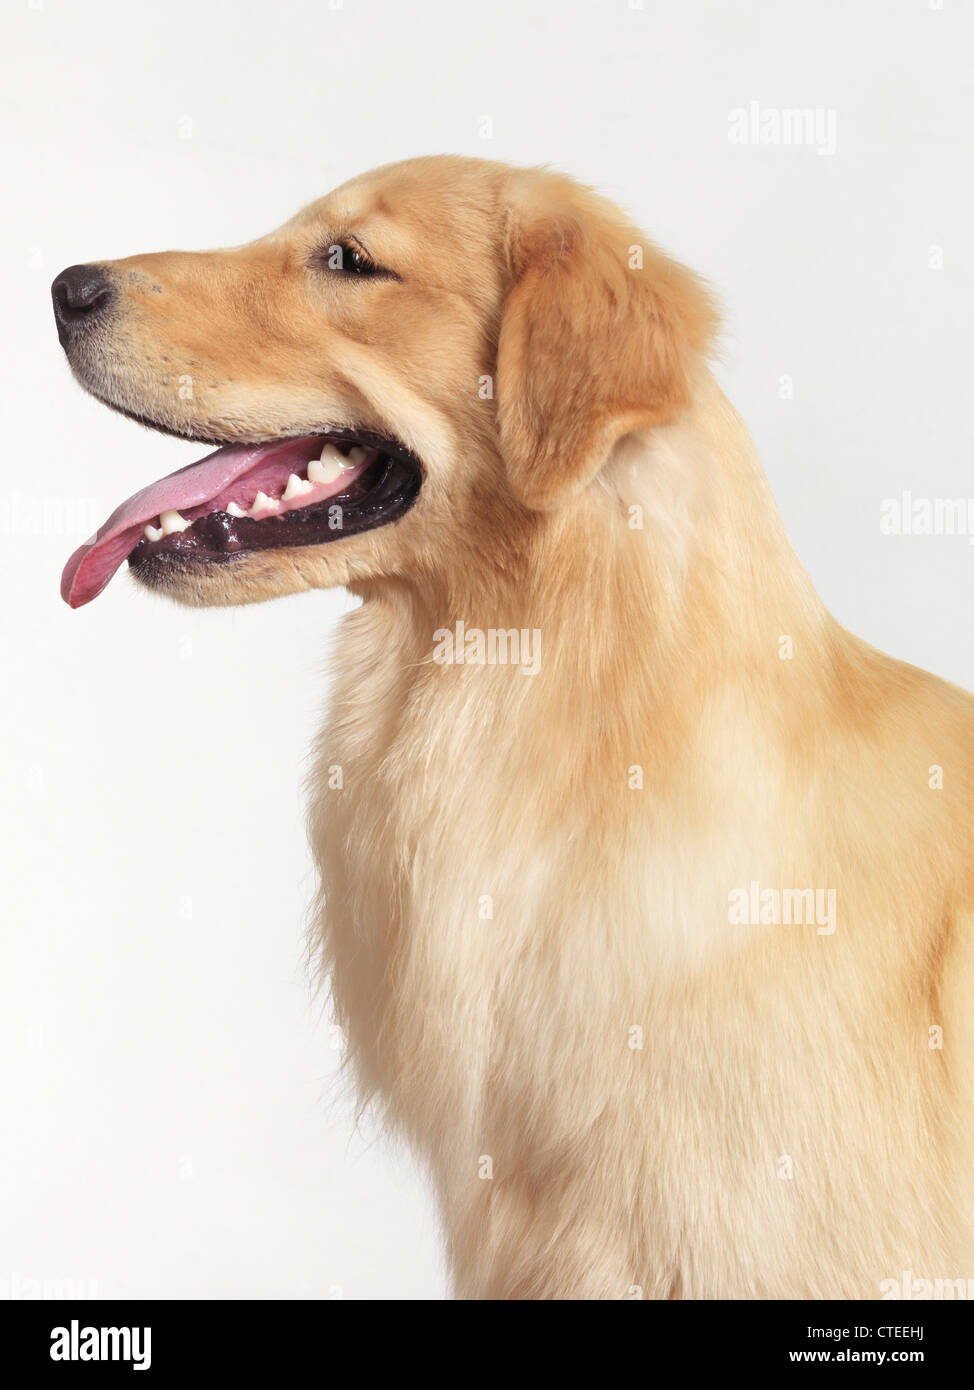 Golden Retriever four month old puppy profile portrait isolated on white background - Stock Image